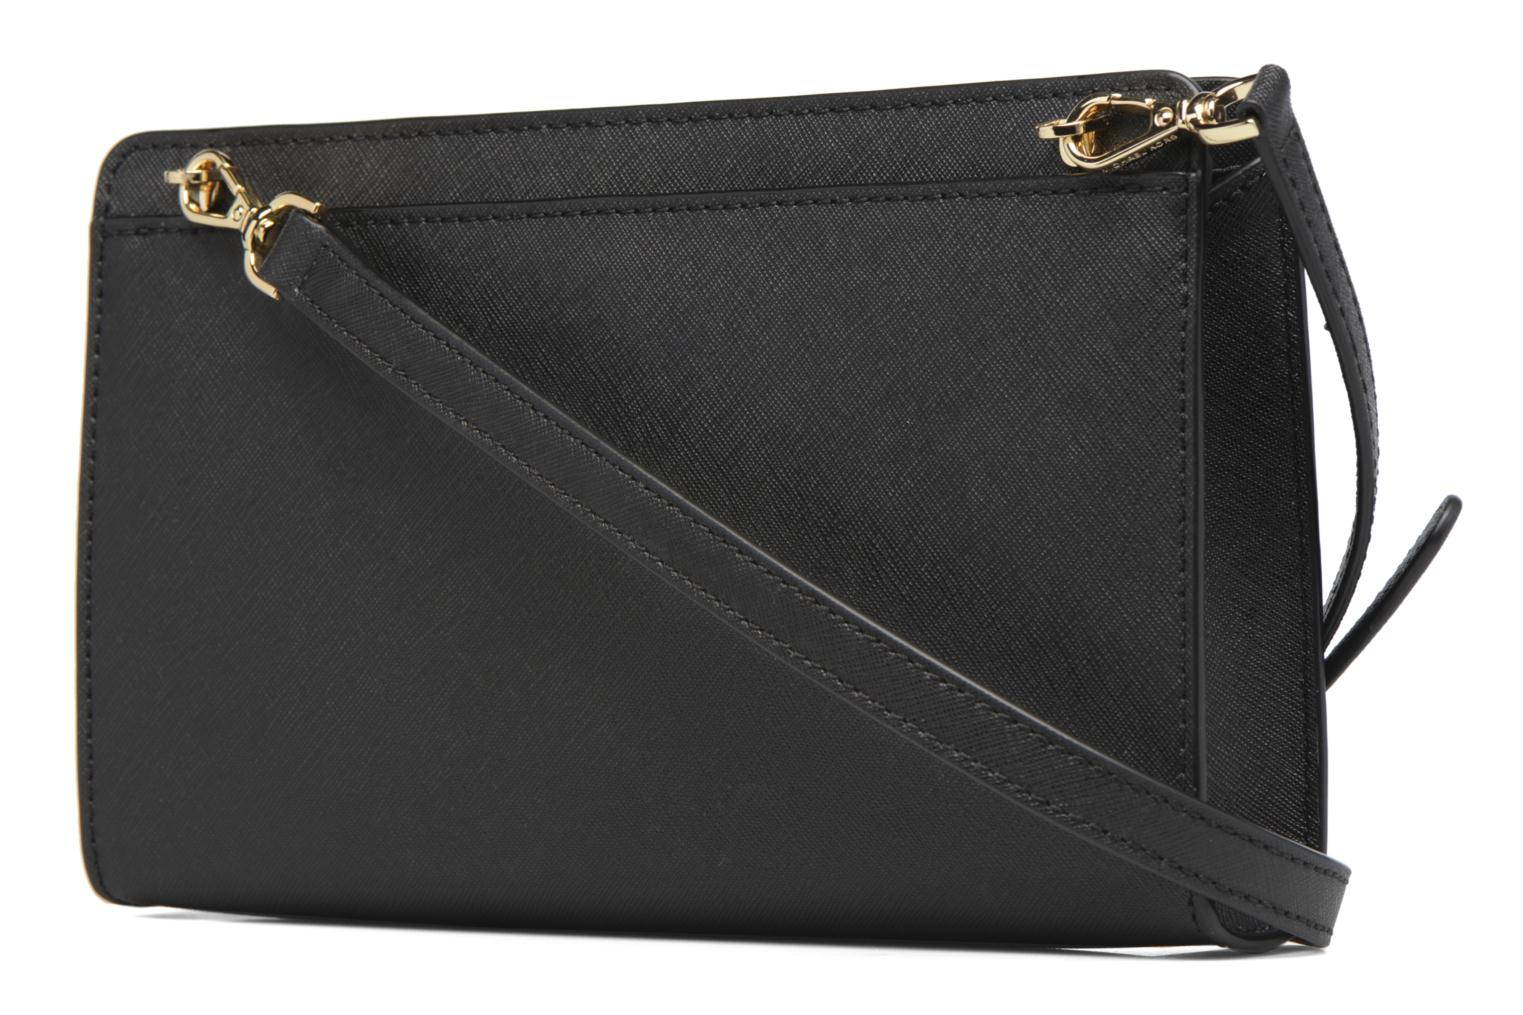 Jet Set Travel LG Clutch 001 black